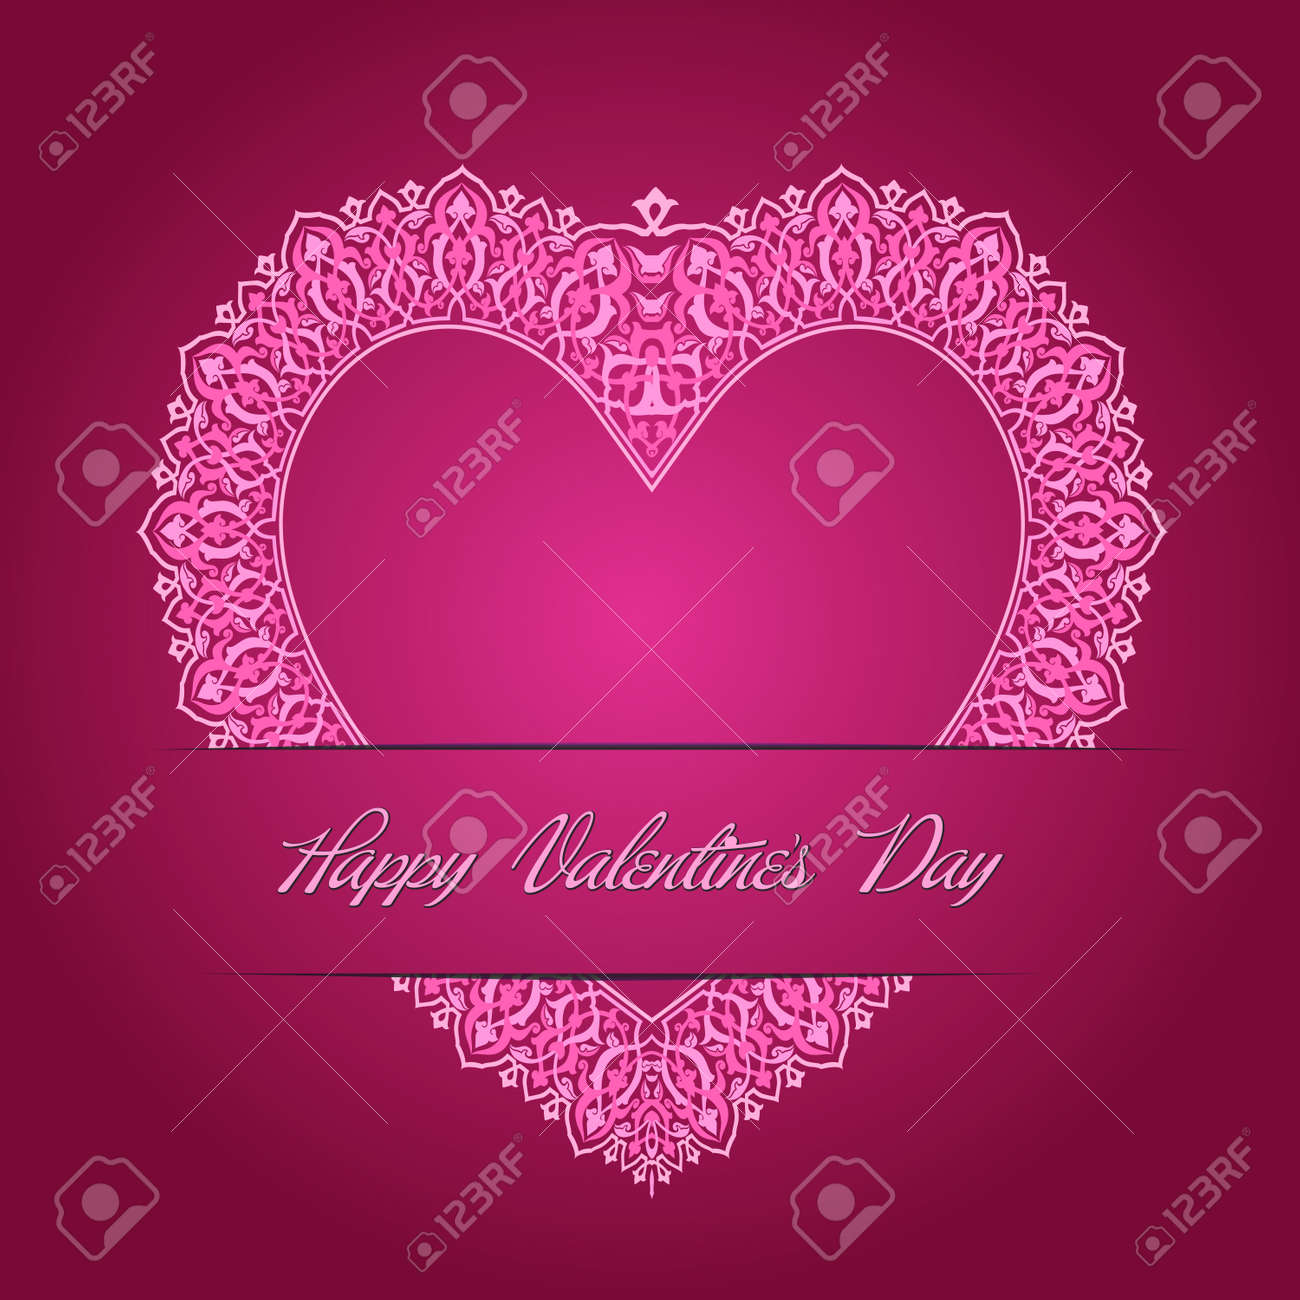 Valentine s Day Card Stock Vector - 26002203